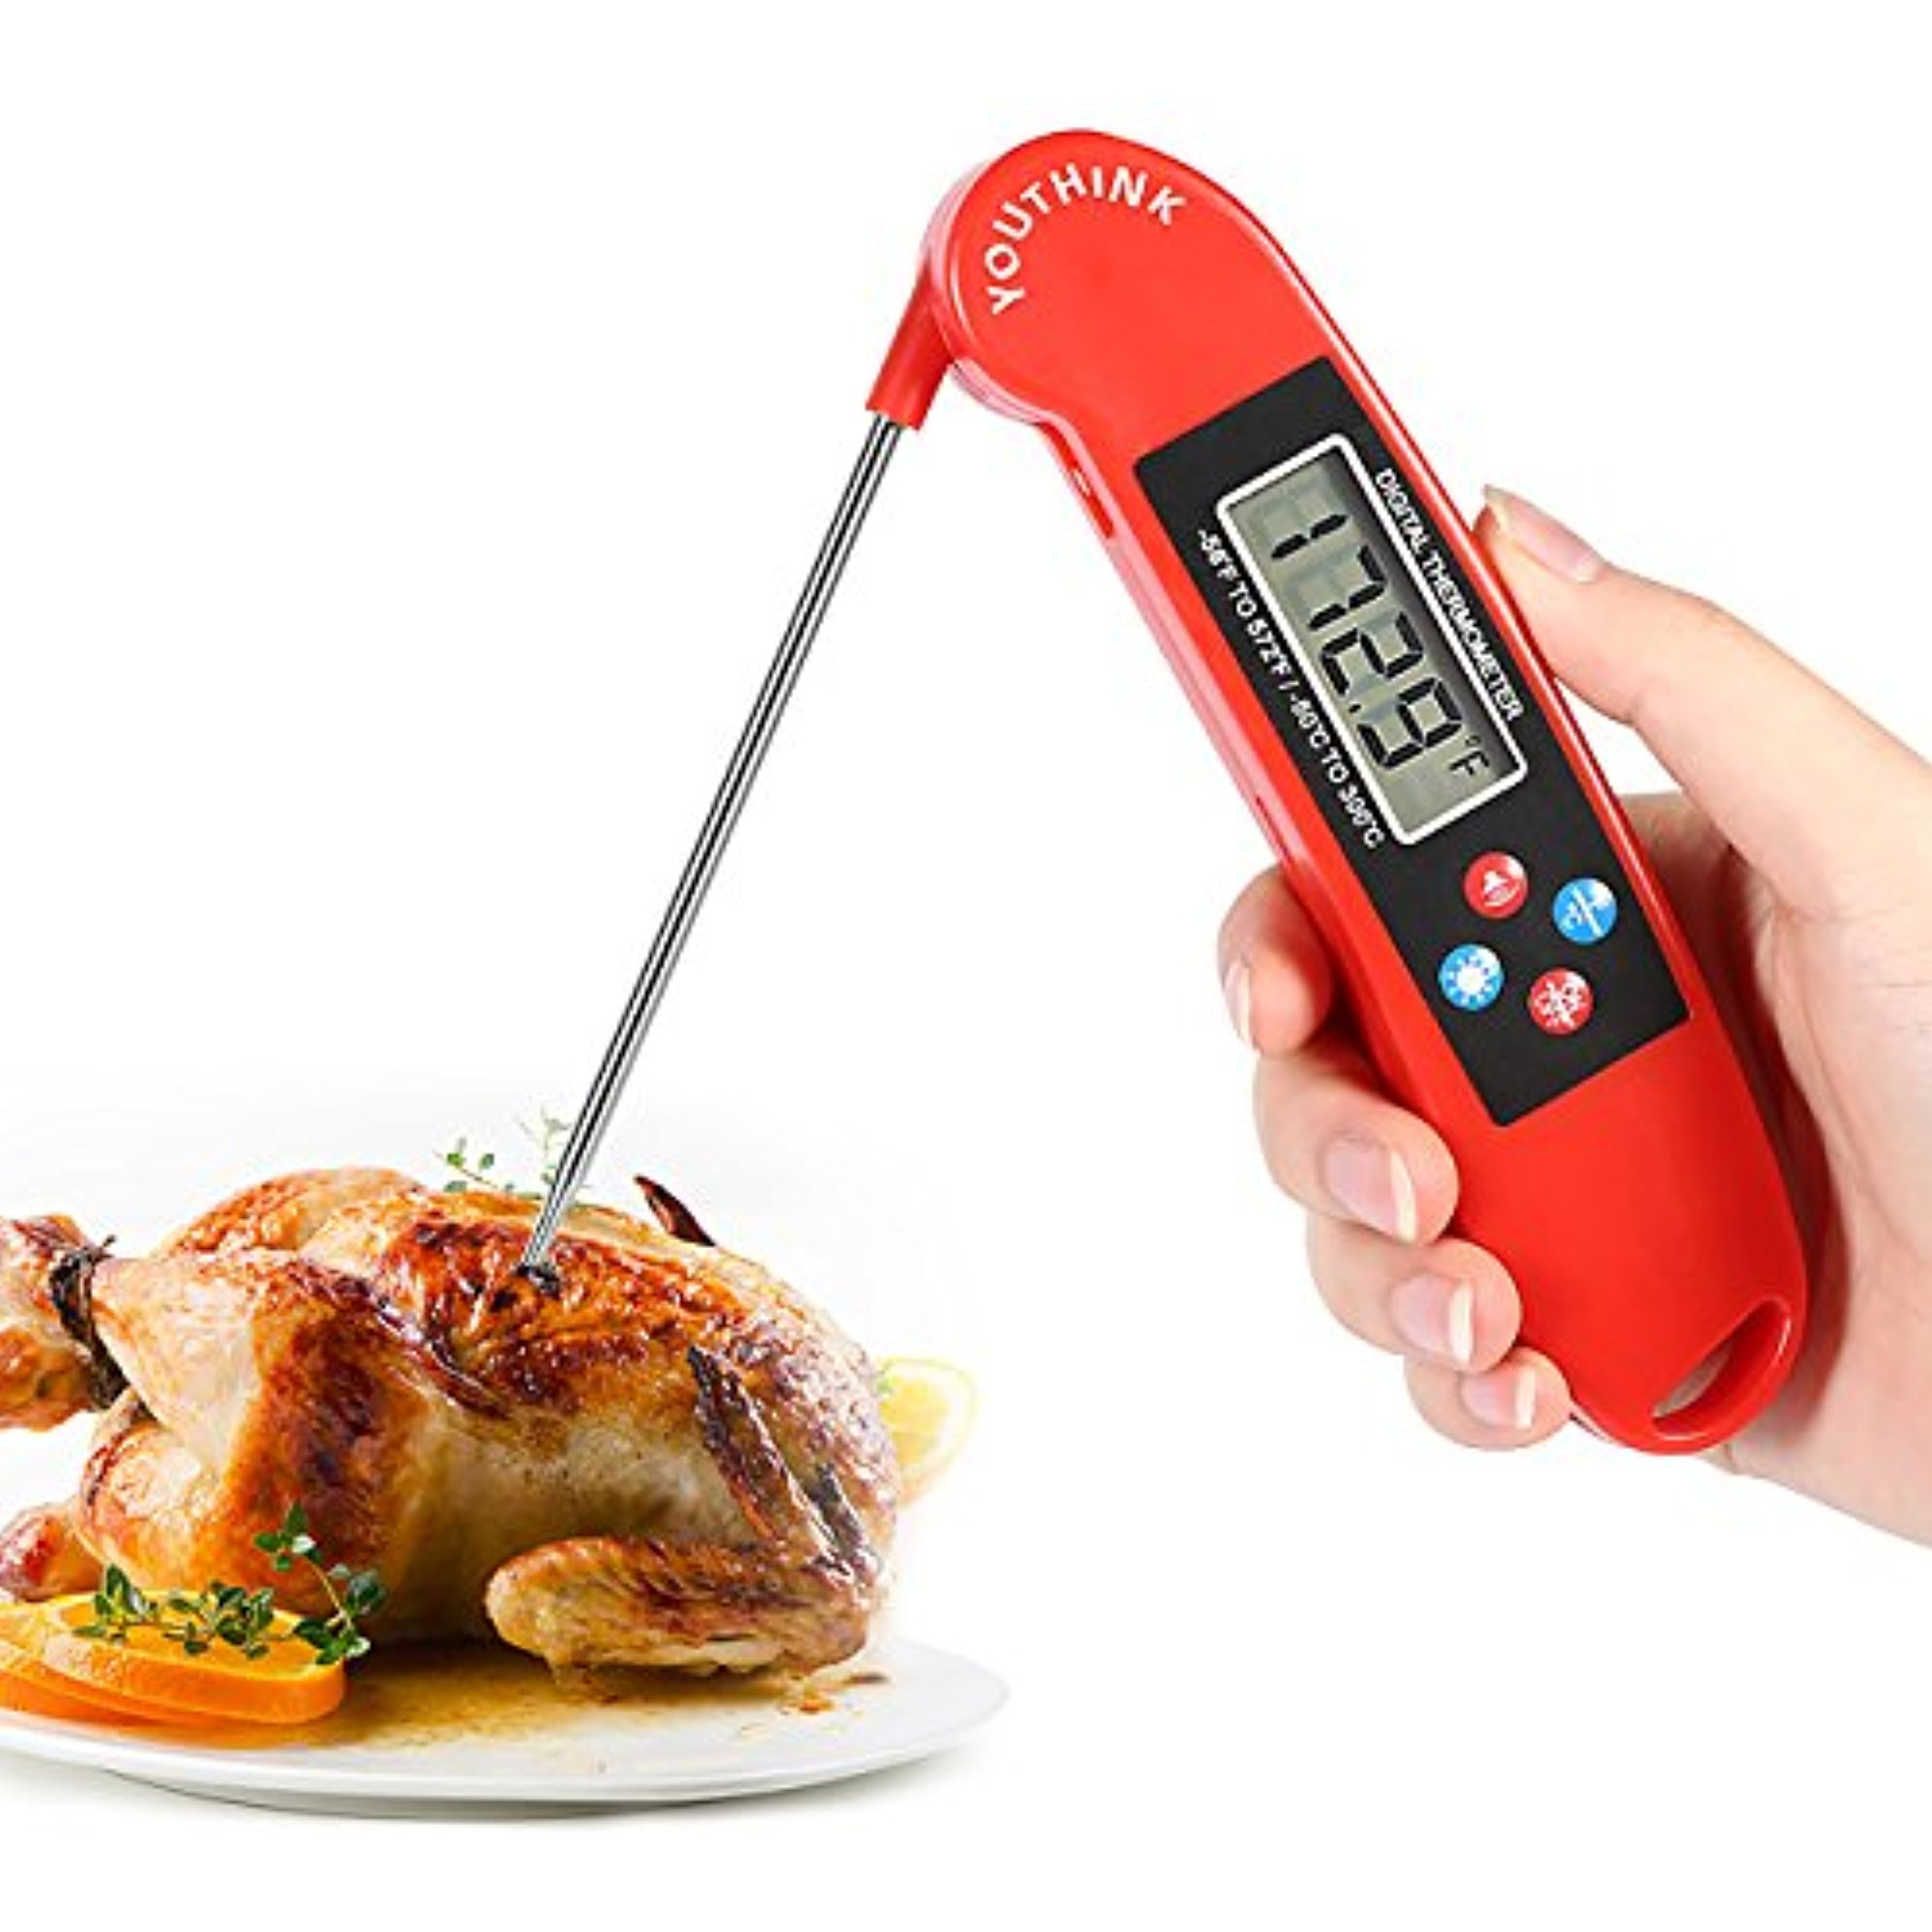 Cooking Thermometer Voice Function Digital Thermometer Folding Probe Meat Thermometer Fast Read Kitchen Thermometer with Backlight LCD Display for Grill BBQ Candy Bath Water